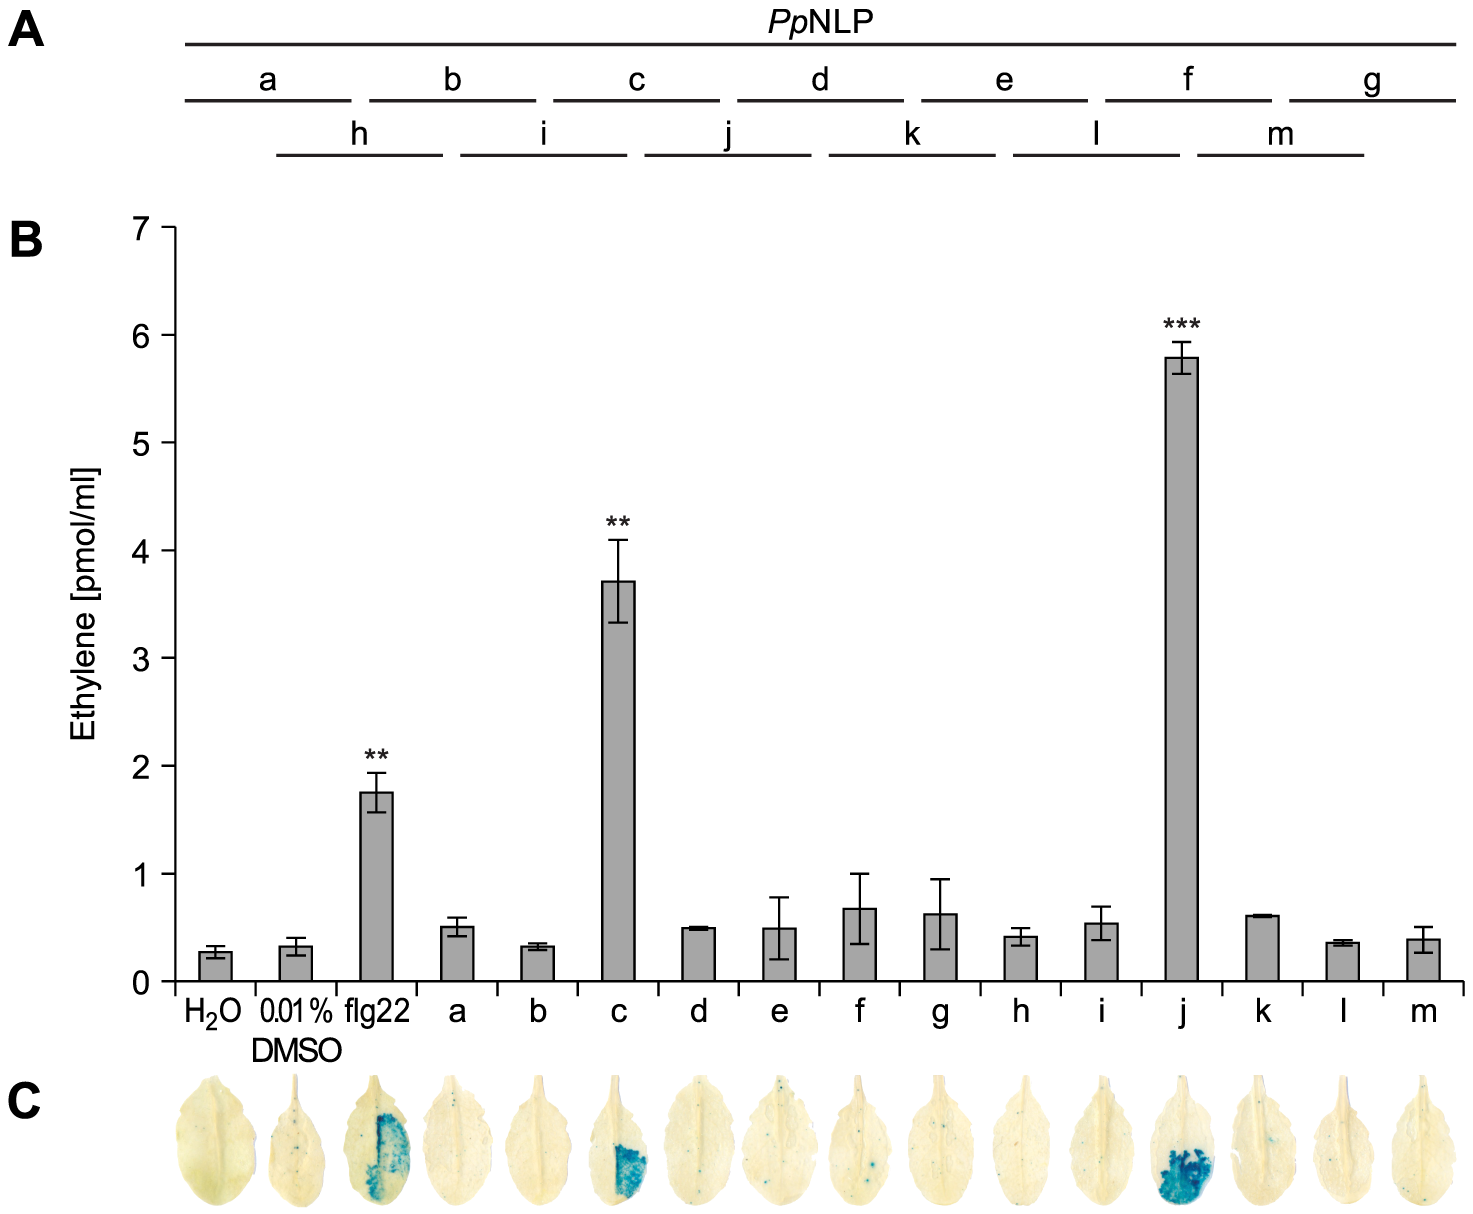 Immunogenic activities in <i>Arabidopsis</i> of synthetic <i>Pp</i>NLP sequence-derived peptides.